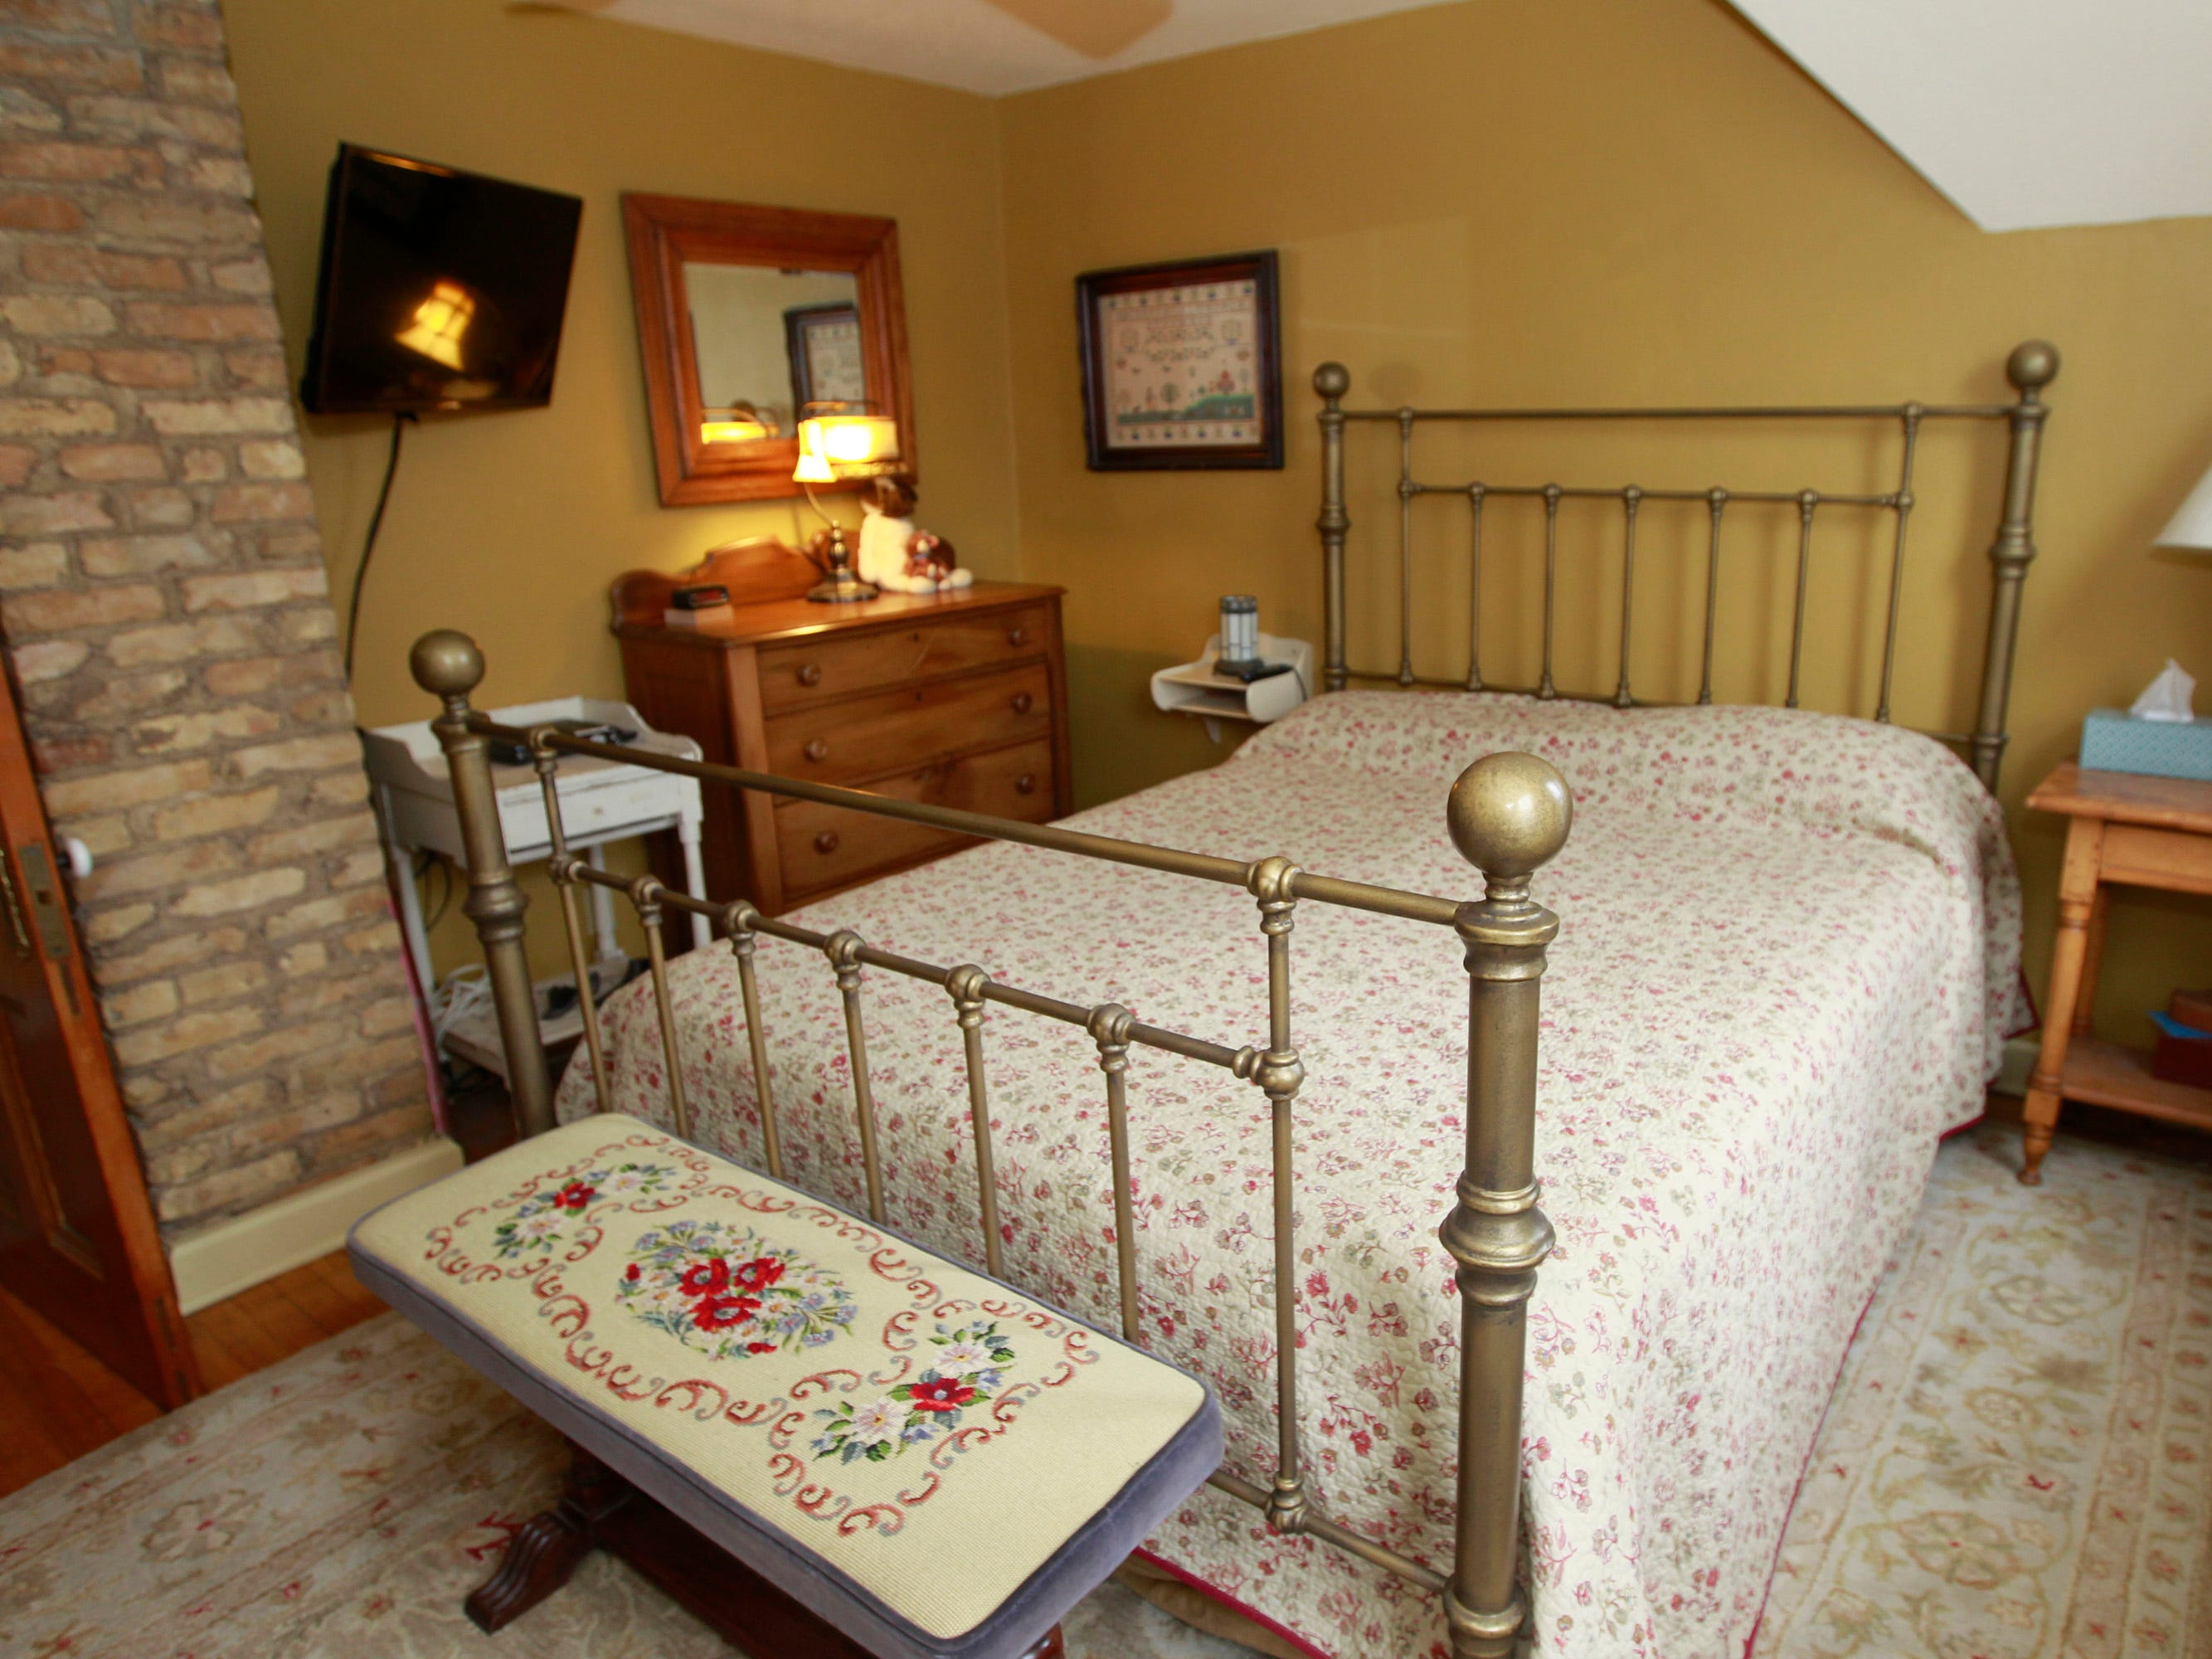 The master bedroom has cream city brick along with a brass bed.